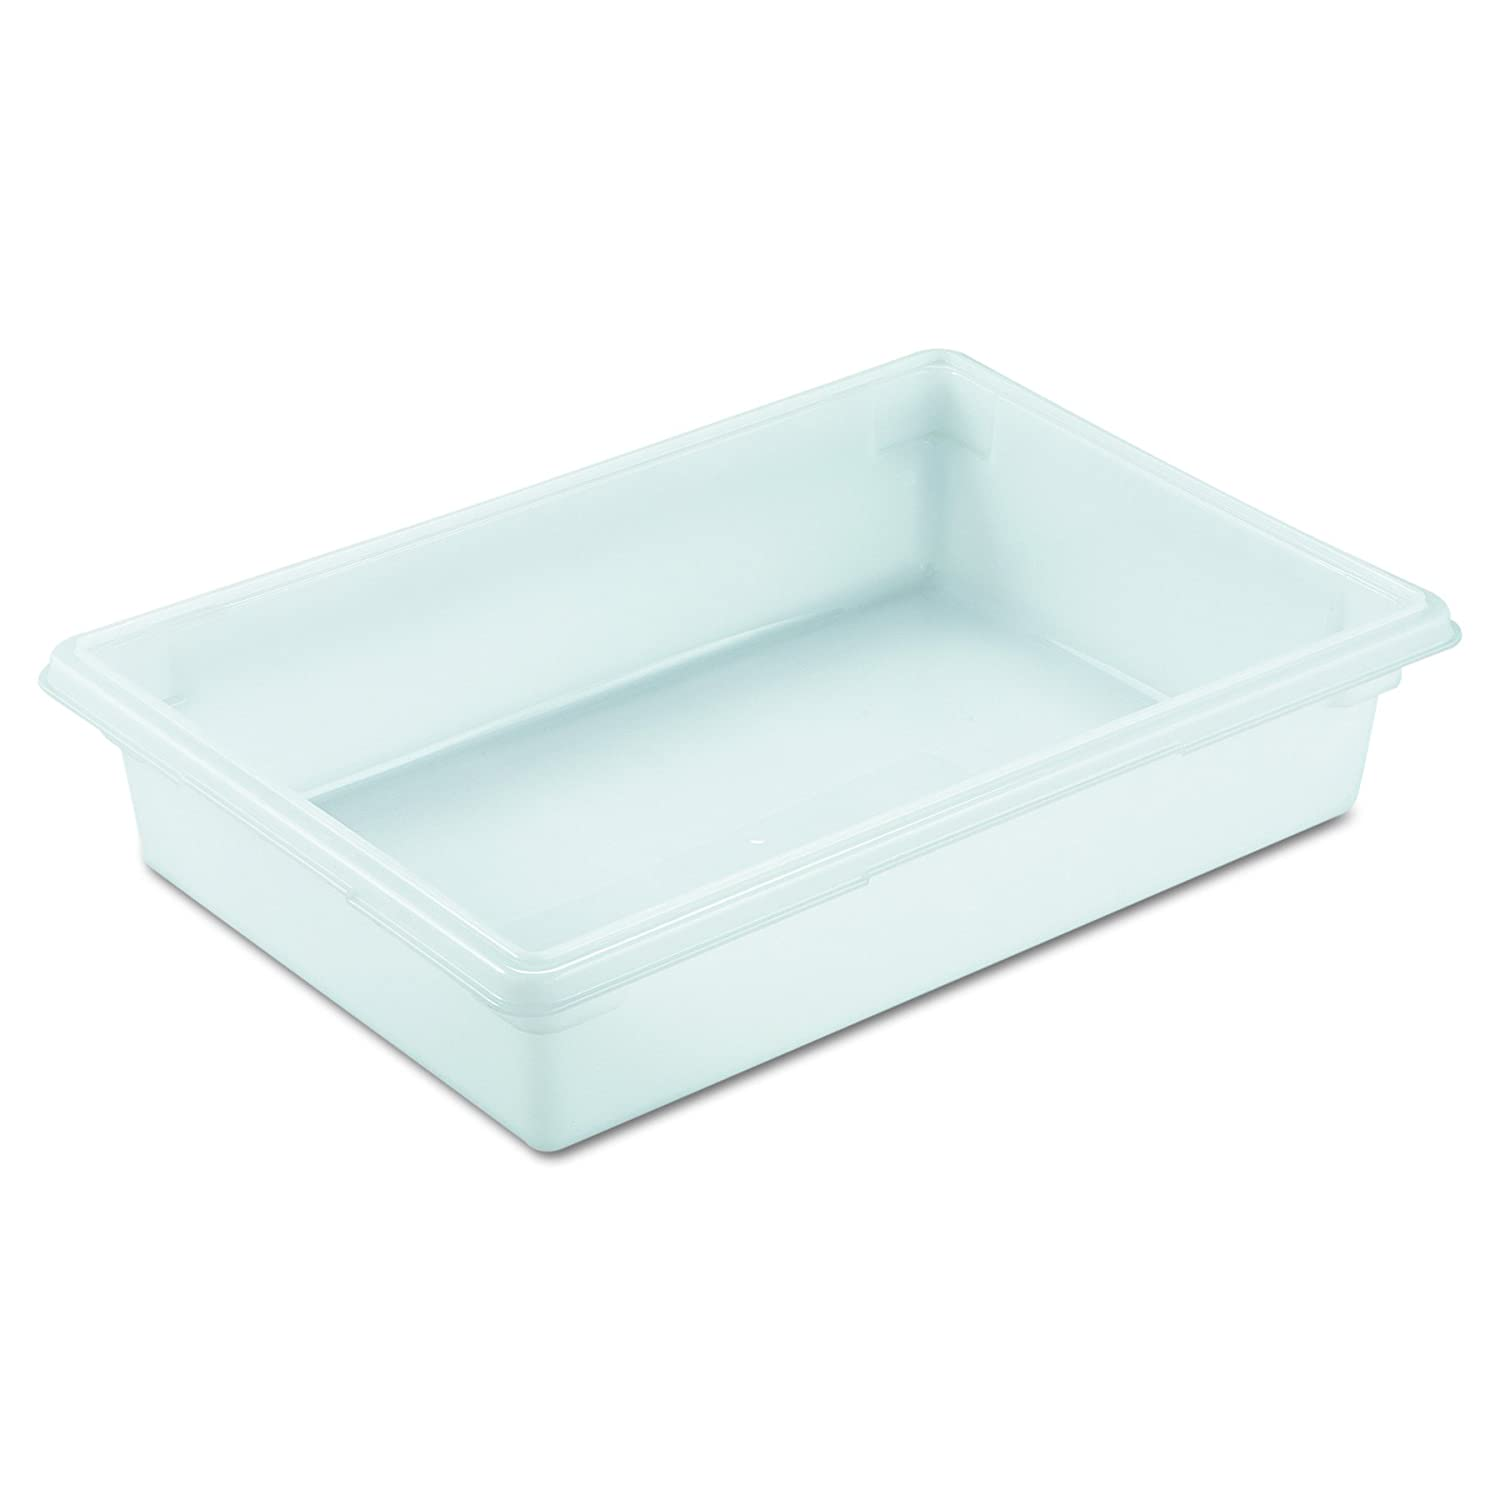 "Rubbermaid 3508 WHI 26"" Length x 18"" Width x 6"" Depth, 8-1/2 gallon White HDPE Food/Tote Box ( single piece)"